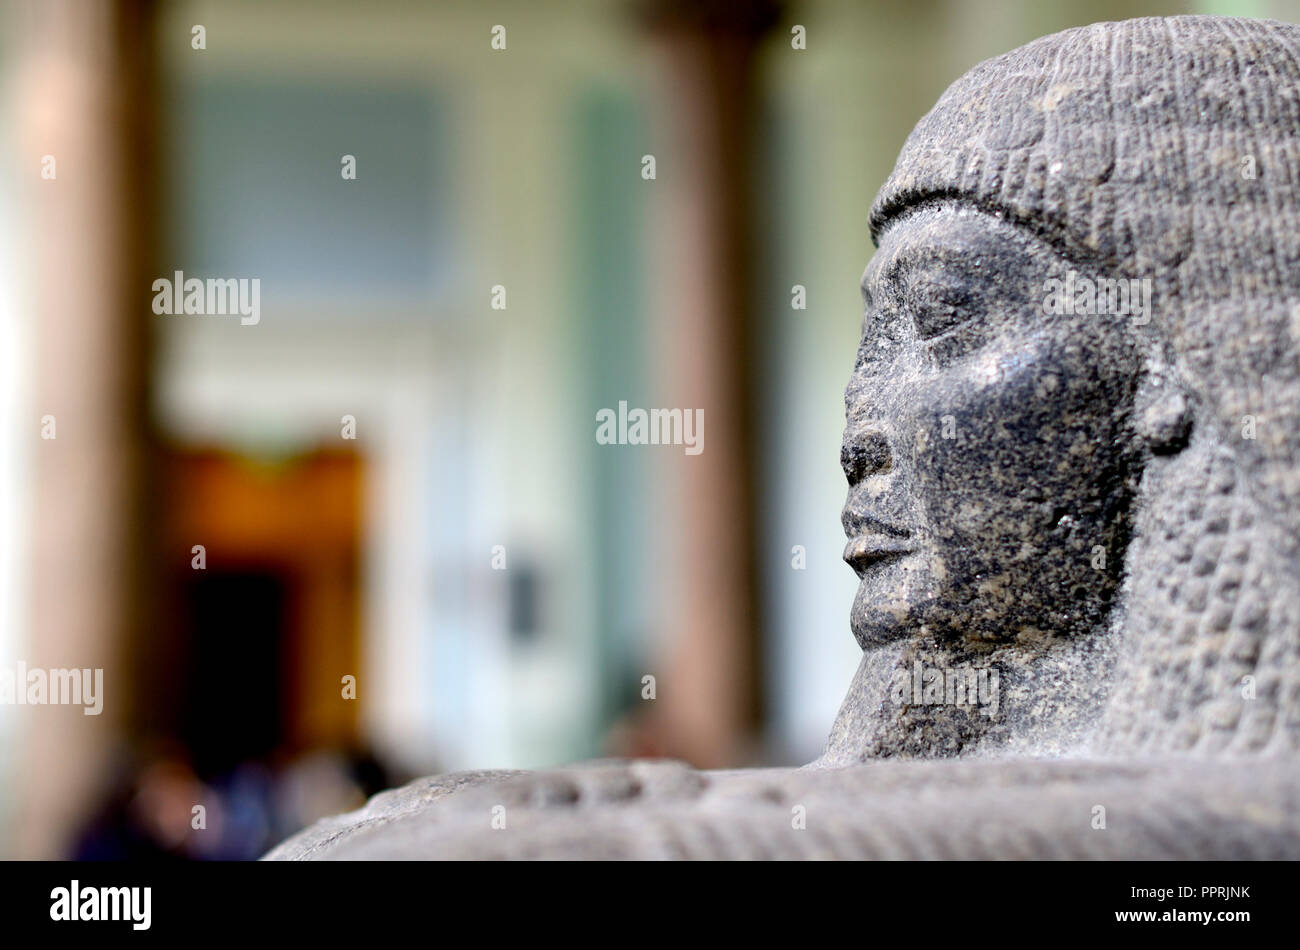 Statue of Roy - high priest of Amun-Ra in Thebes. British Museum, Bloomsbury, London, England, UK. - Stock Image